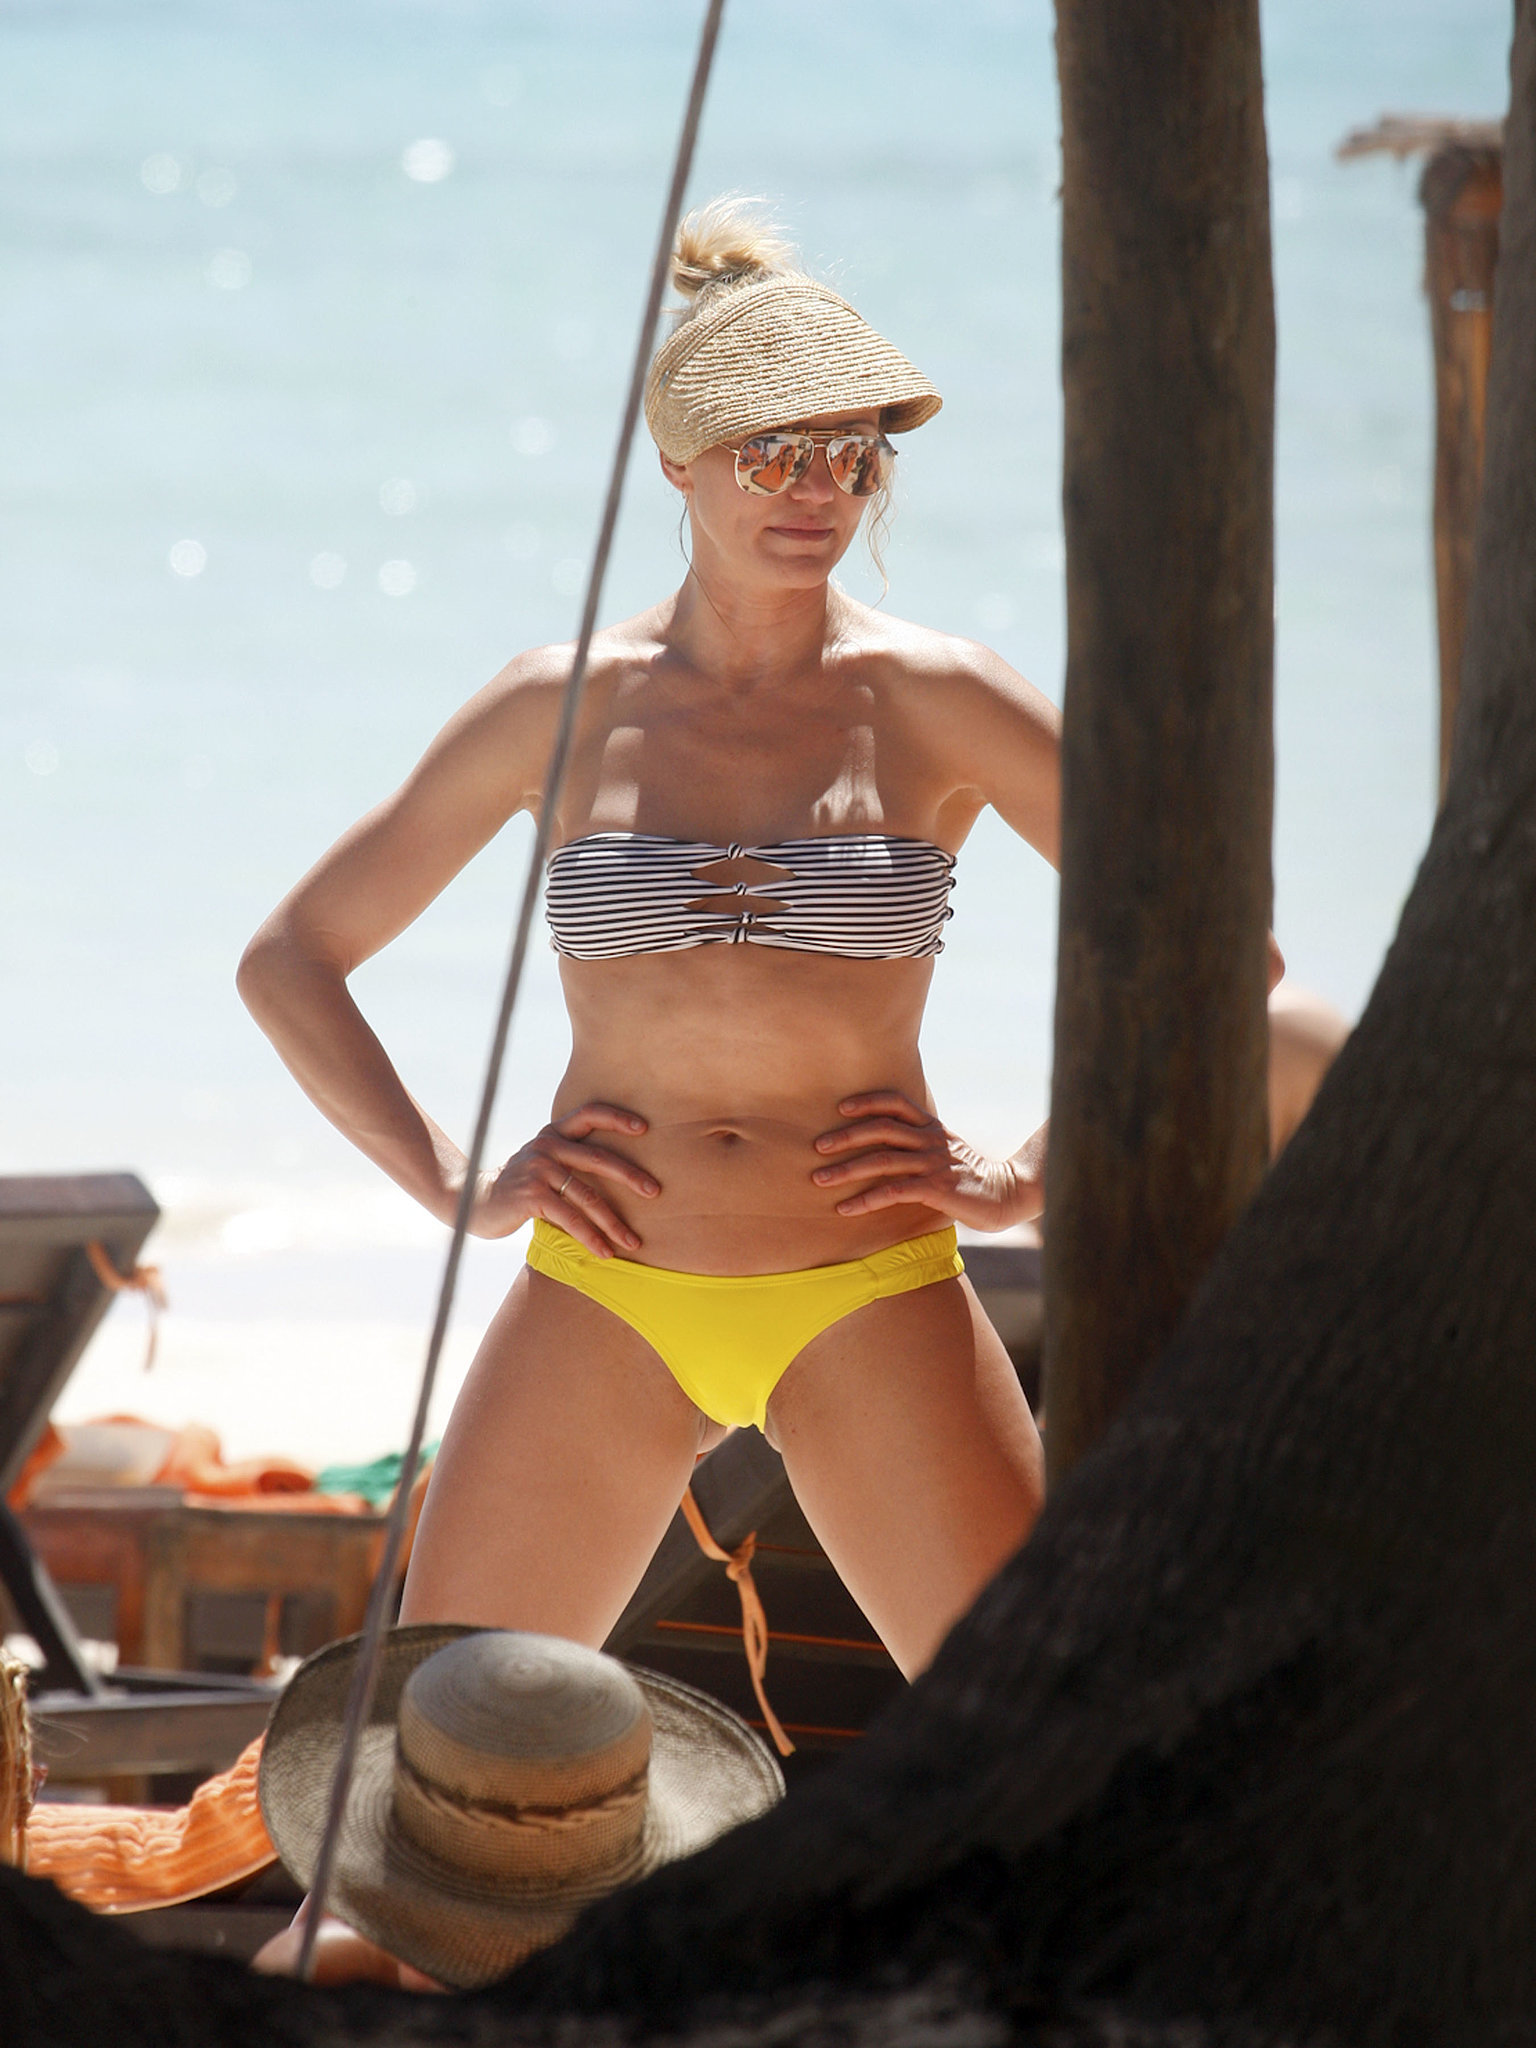 Cameron Diaz showed off her rock-hard abs during a girls' getaway in Mexico in March 2013.